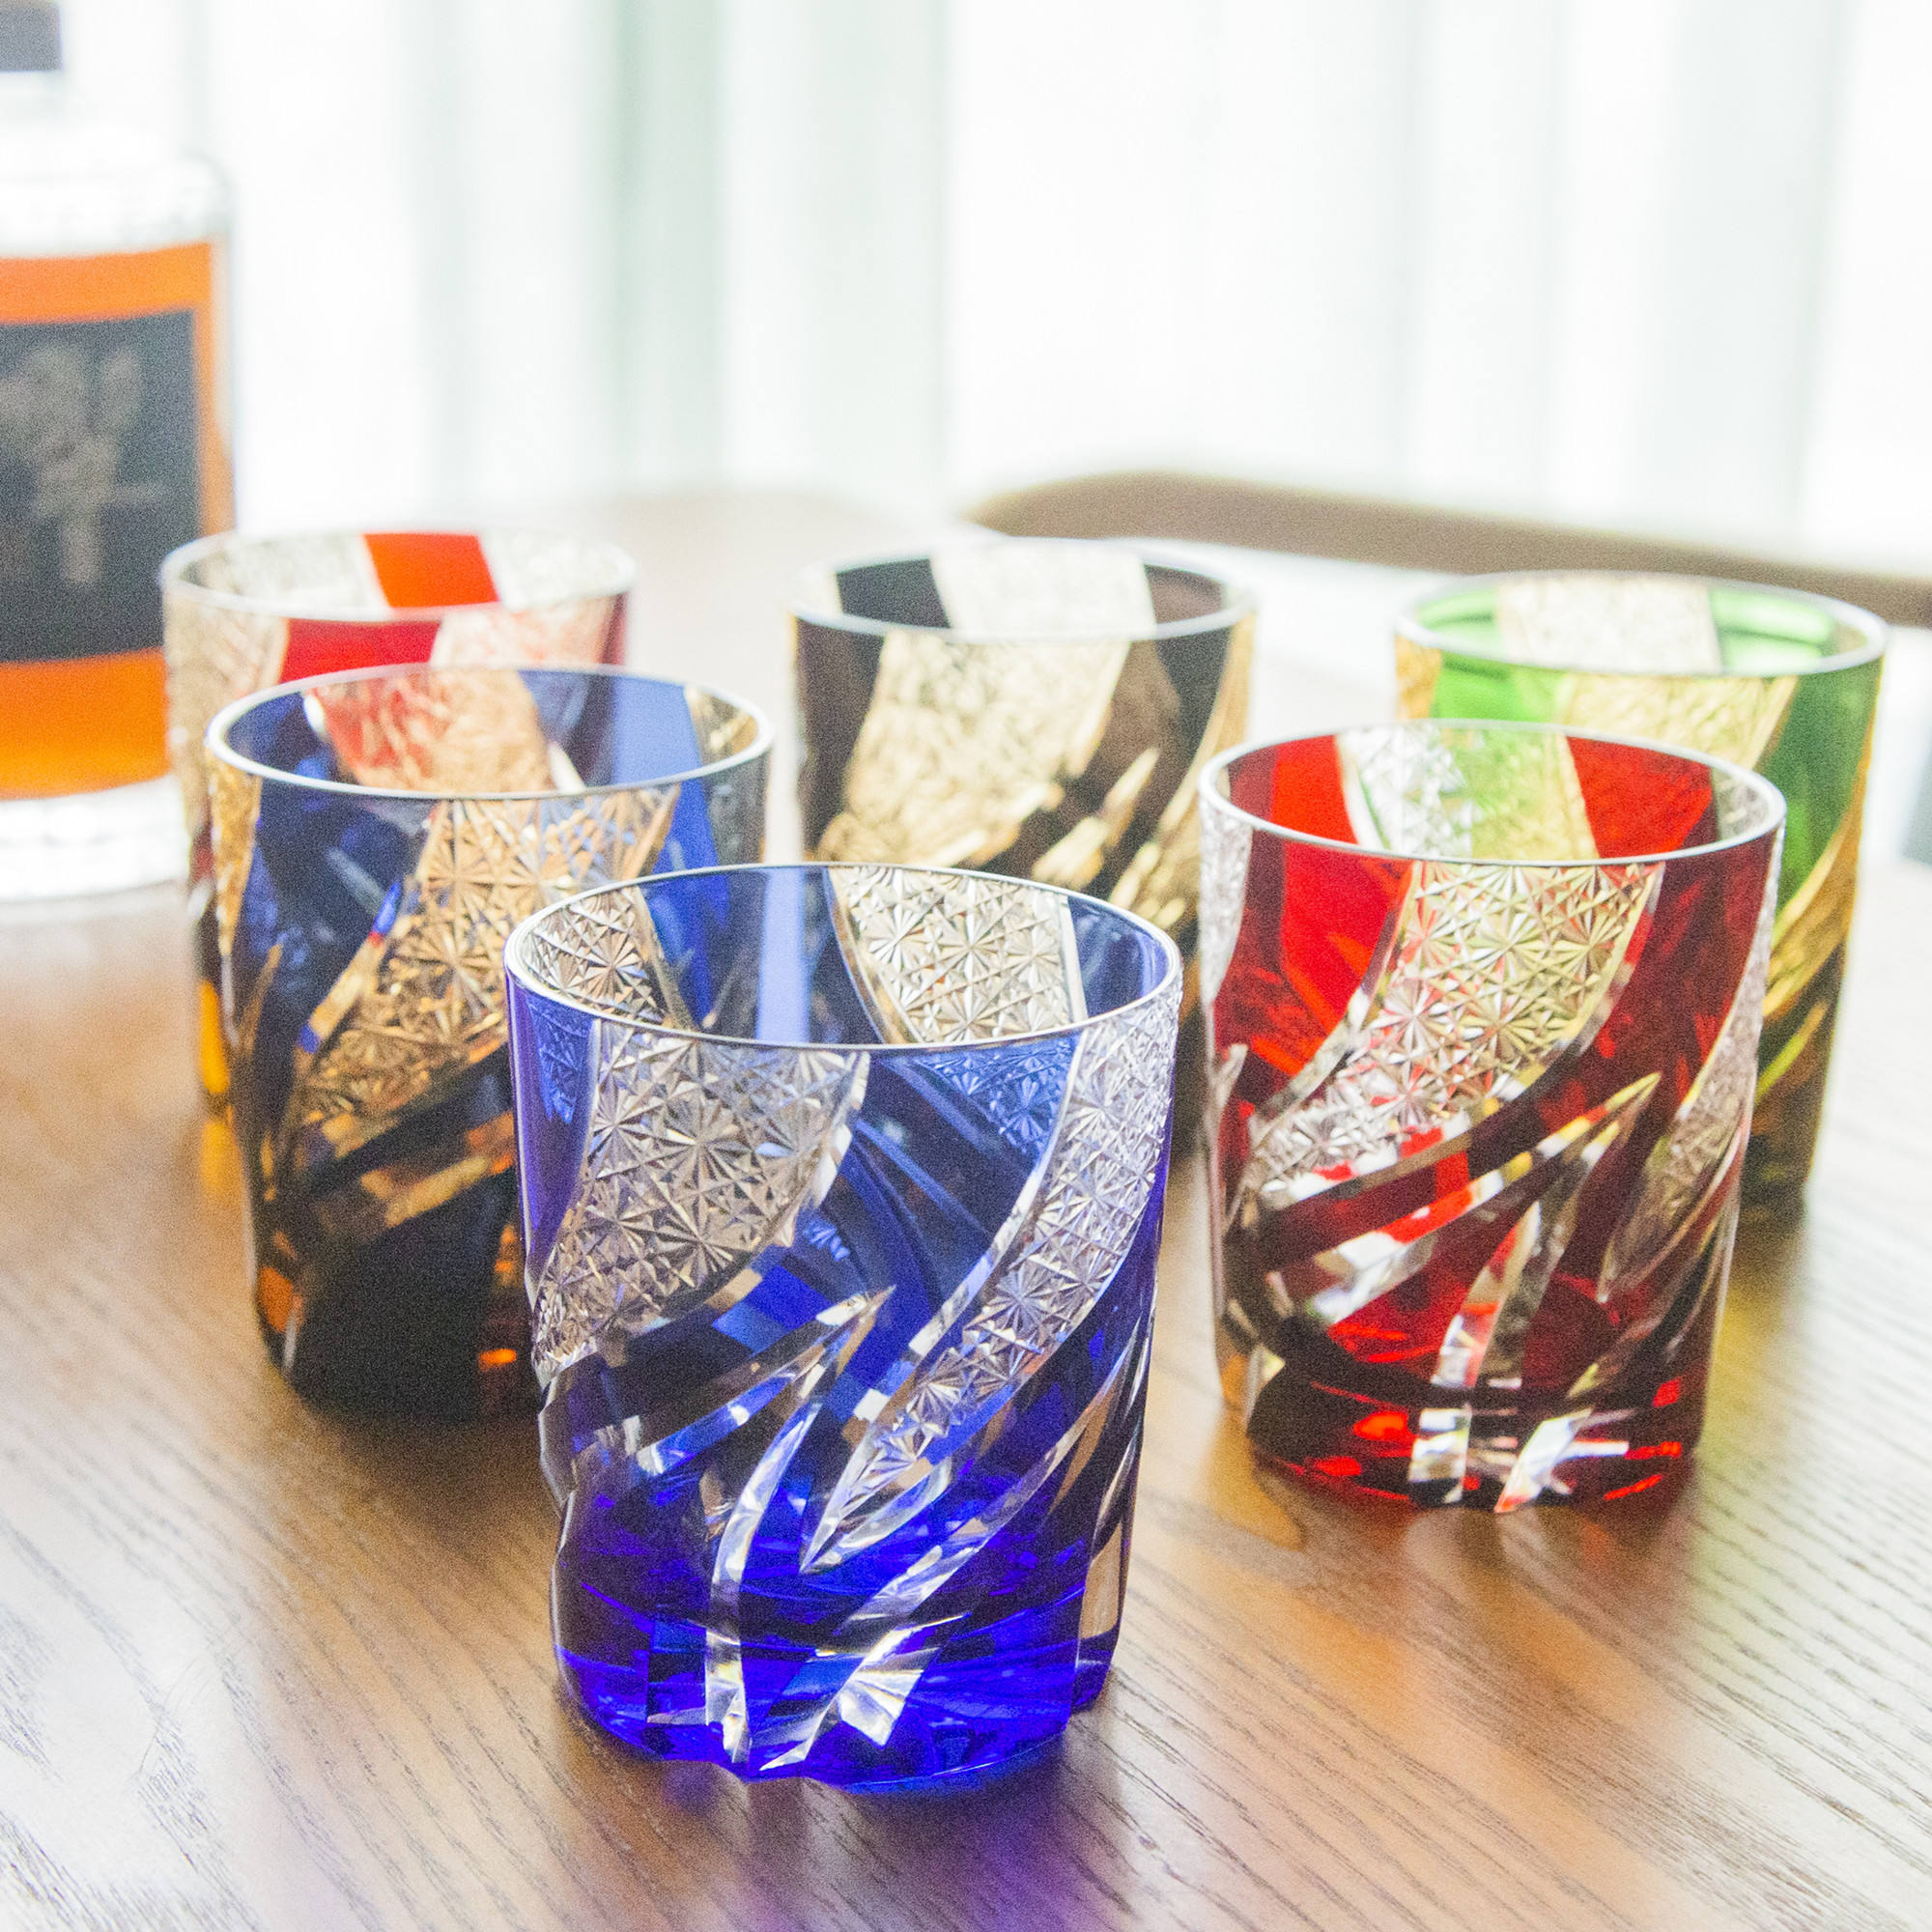 250m Luxury hand cut to amber green blue glass tumbler